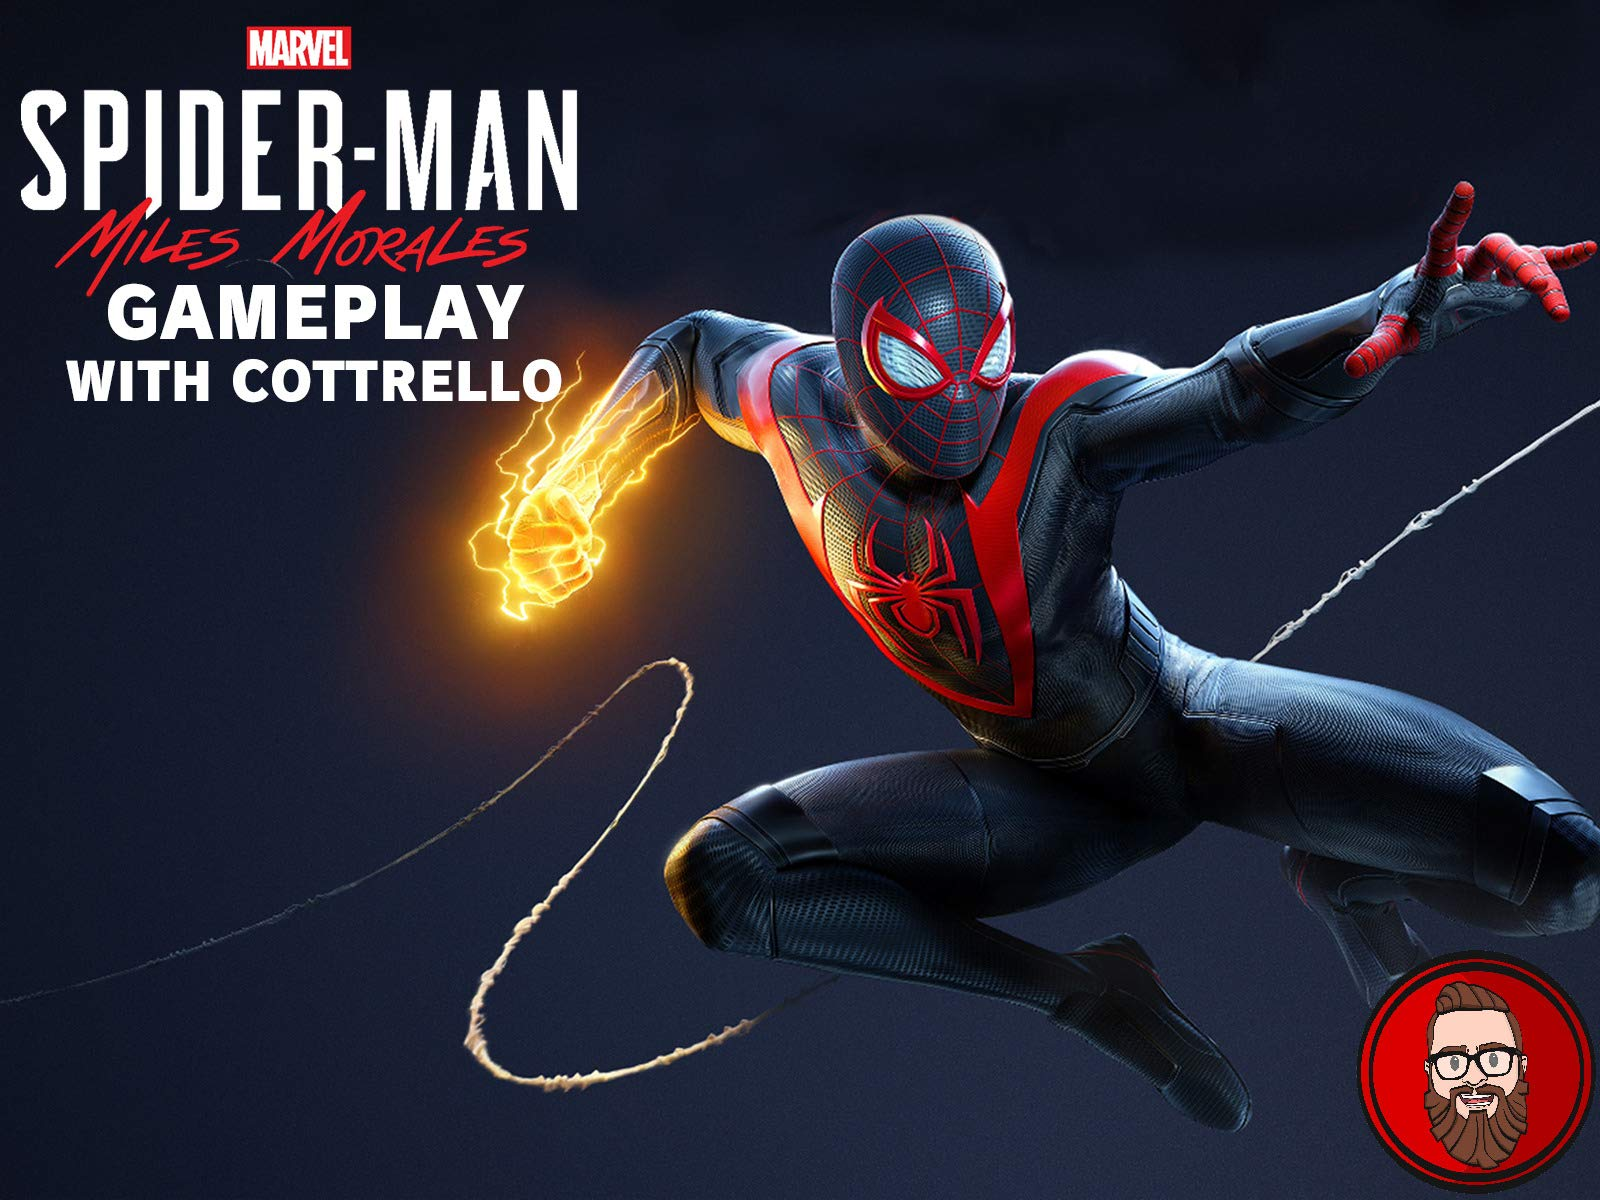 Clip: Marvel's Spider-Man: Miles Morales Gameplay with Cottrello on Amazon Prime Instant Video UK